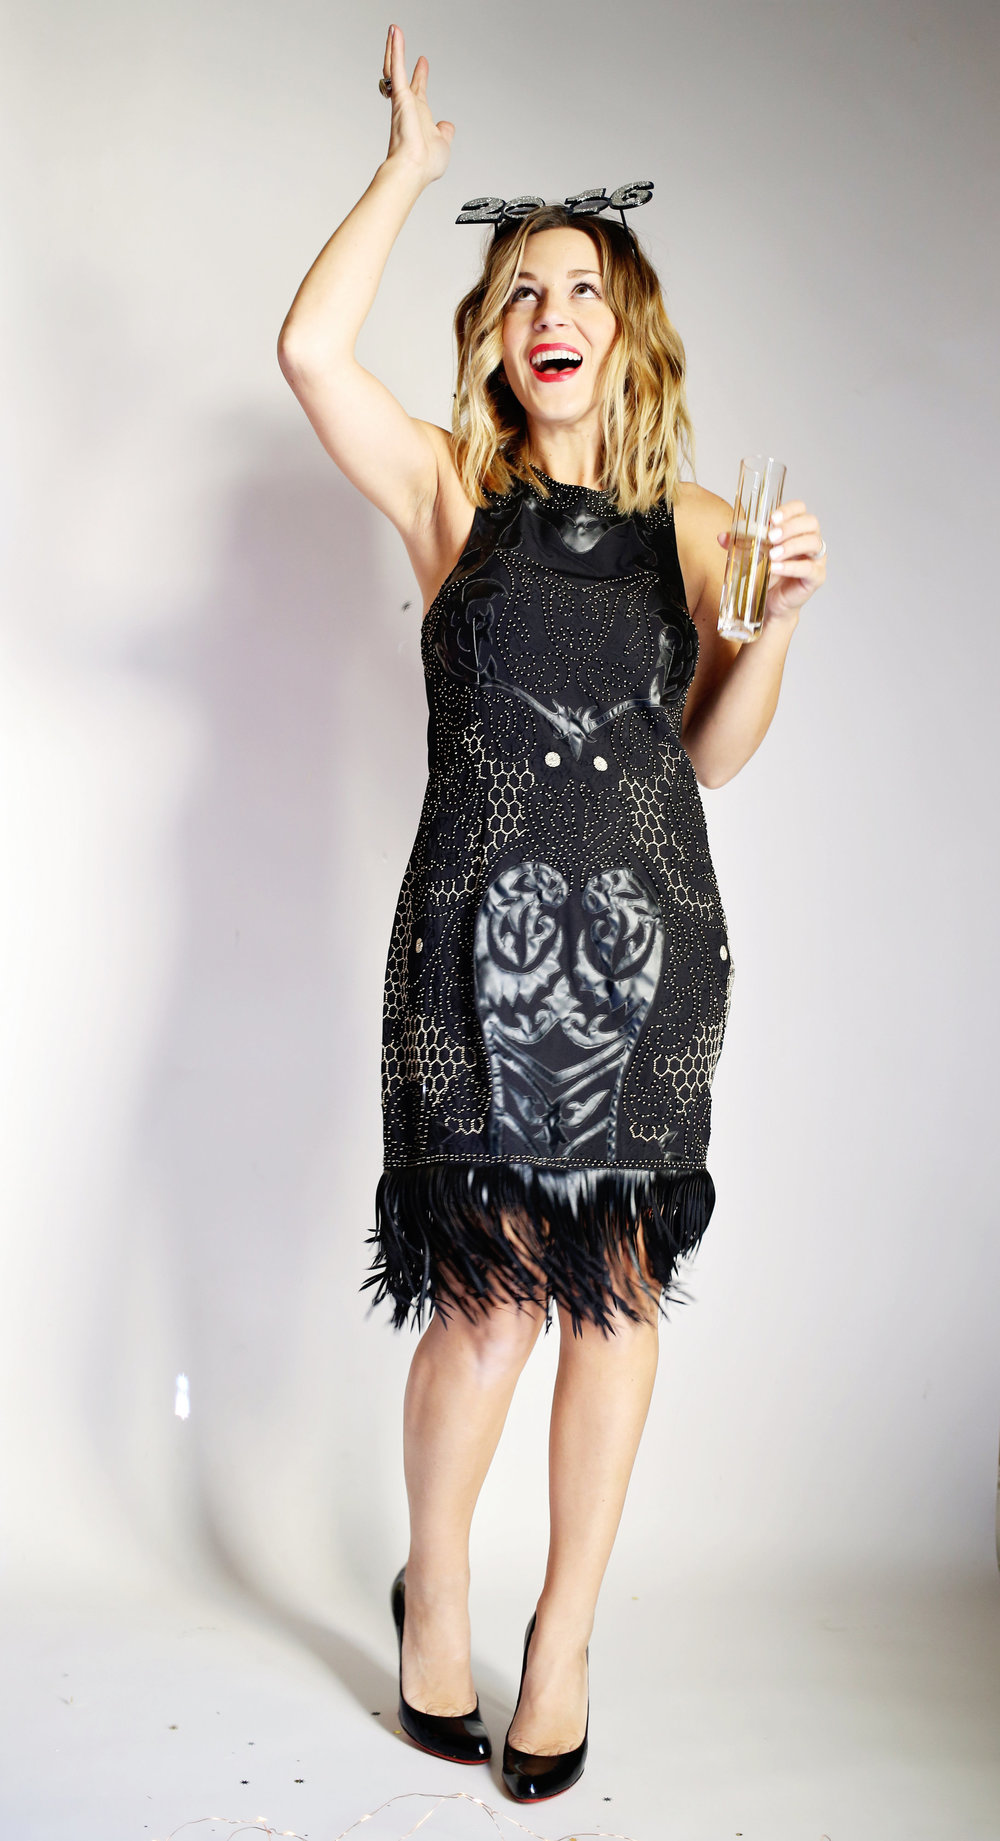 New years eve outfit by yoana baraschi 15.jpg